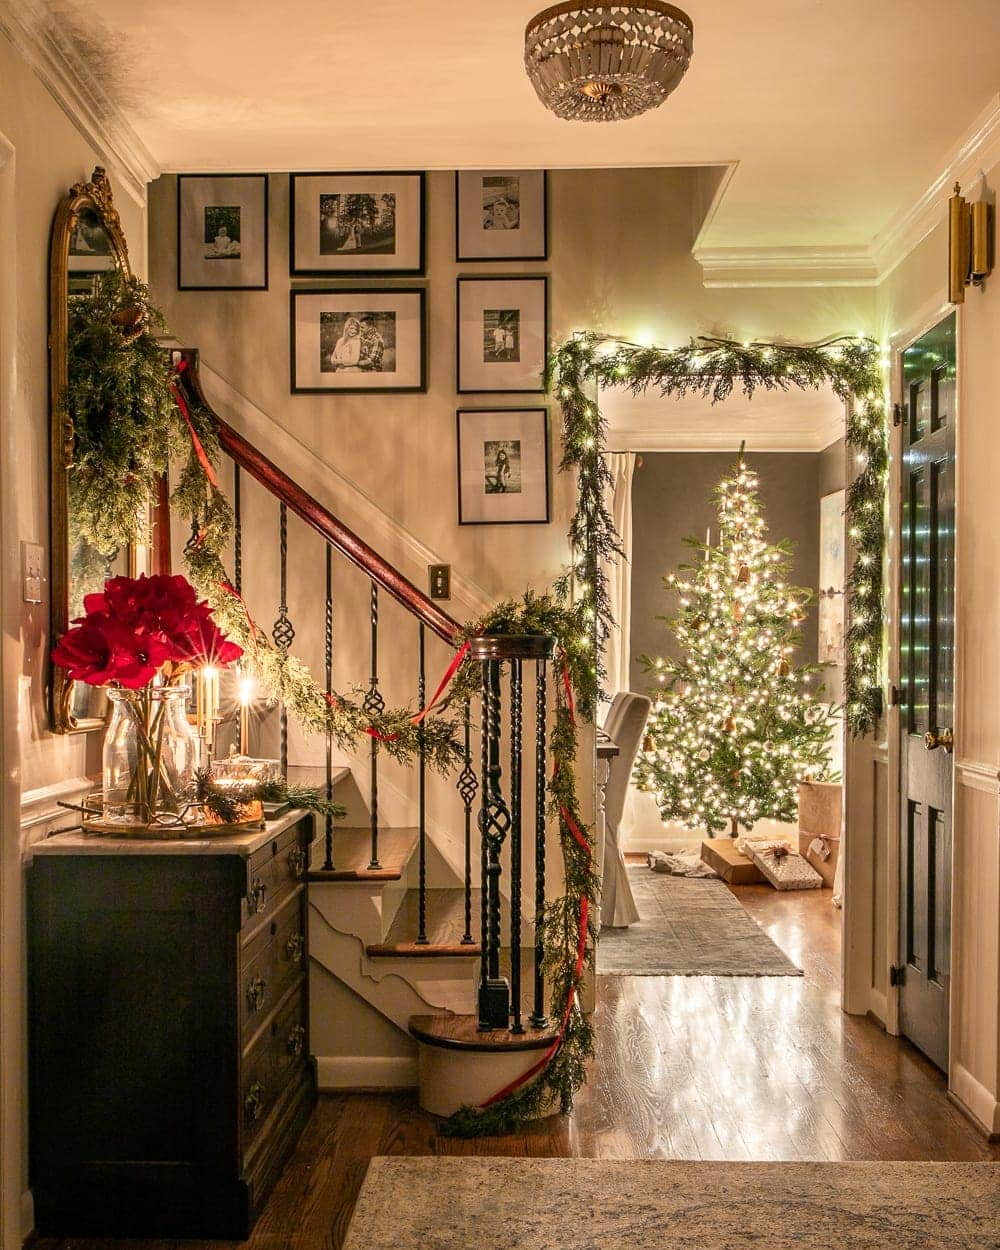 Christmas foyer and dining room at night with twinkle lights and candlelight